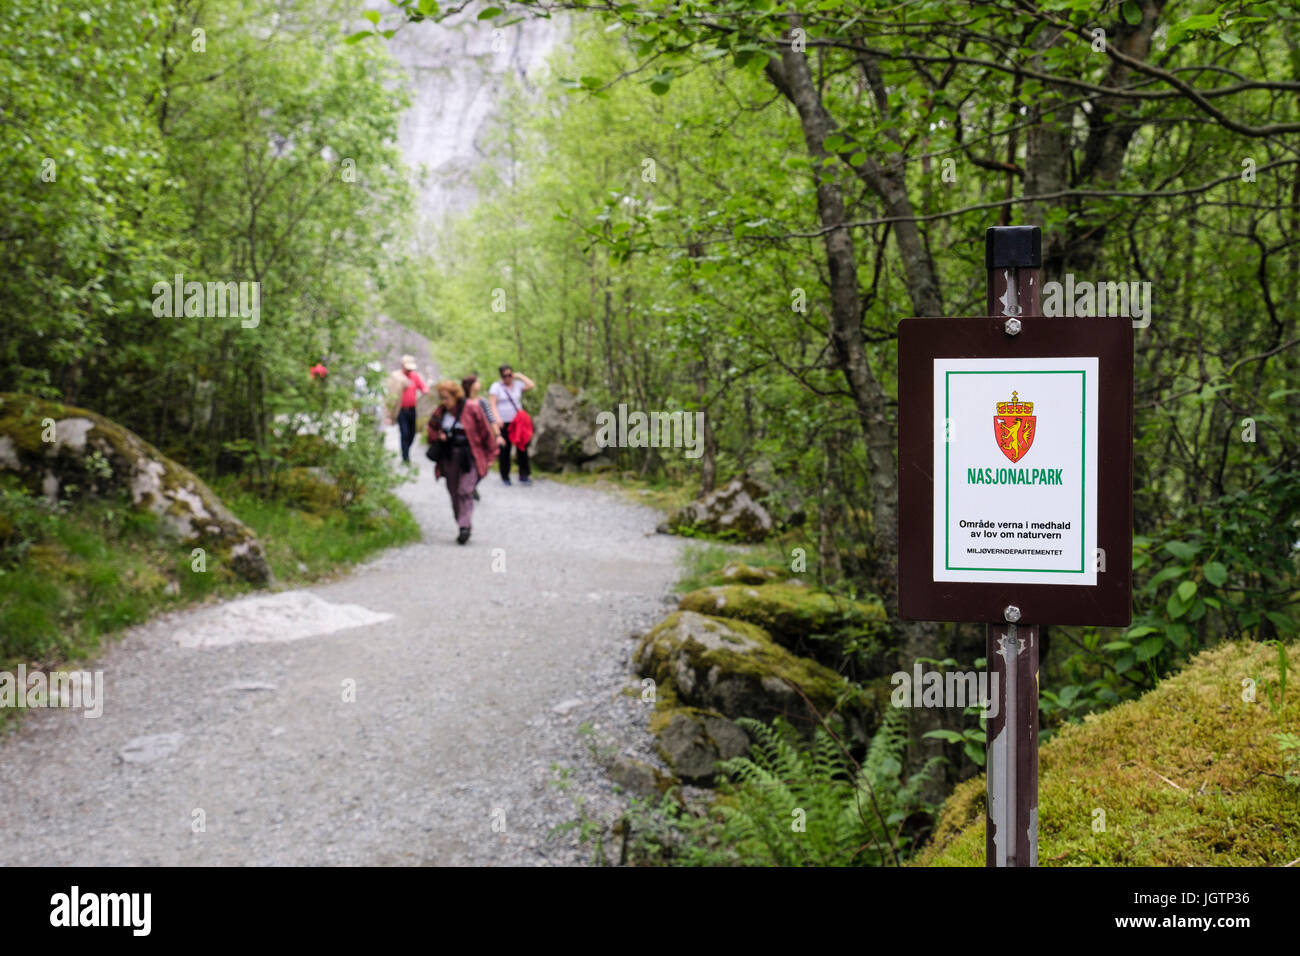 Sign for Jostedalsbreen nasjonalpark or Jostedalsbreen National Park with tourists on Briksdalsbreen glacier trail - Stock Image